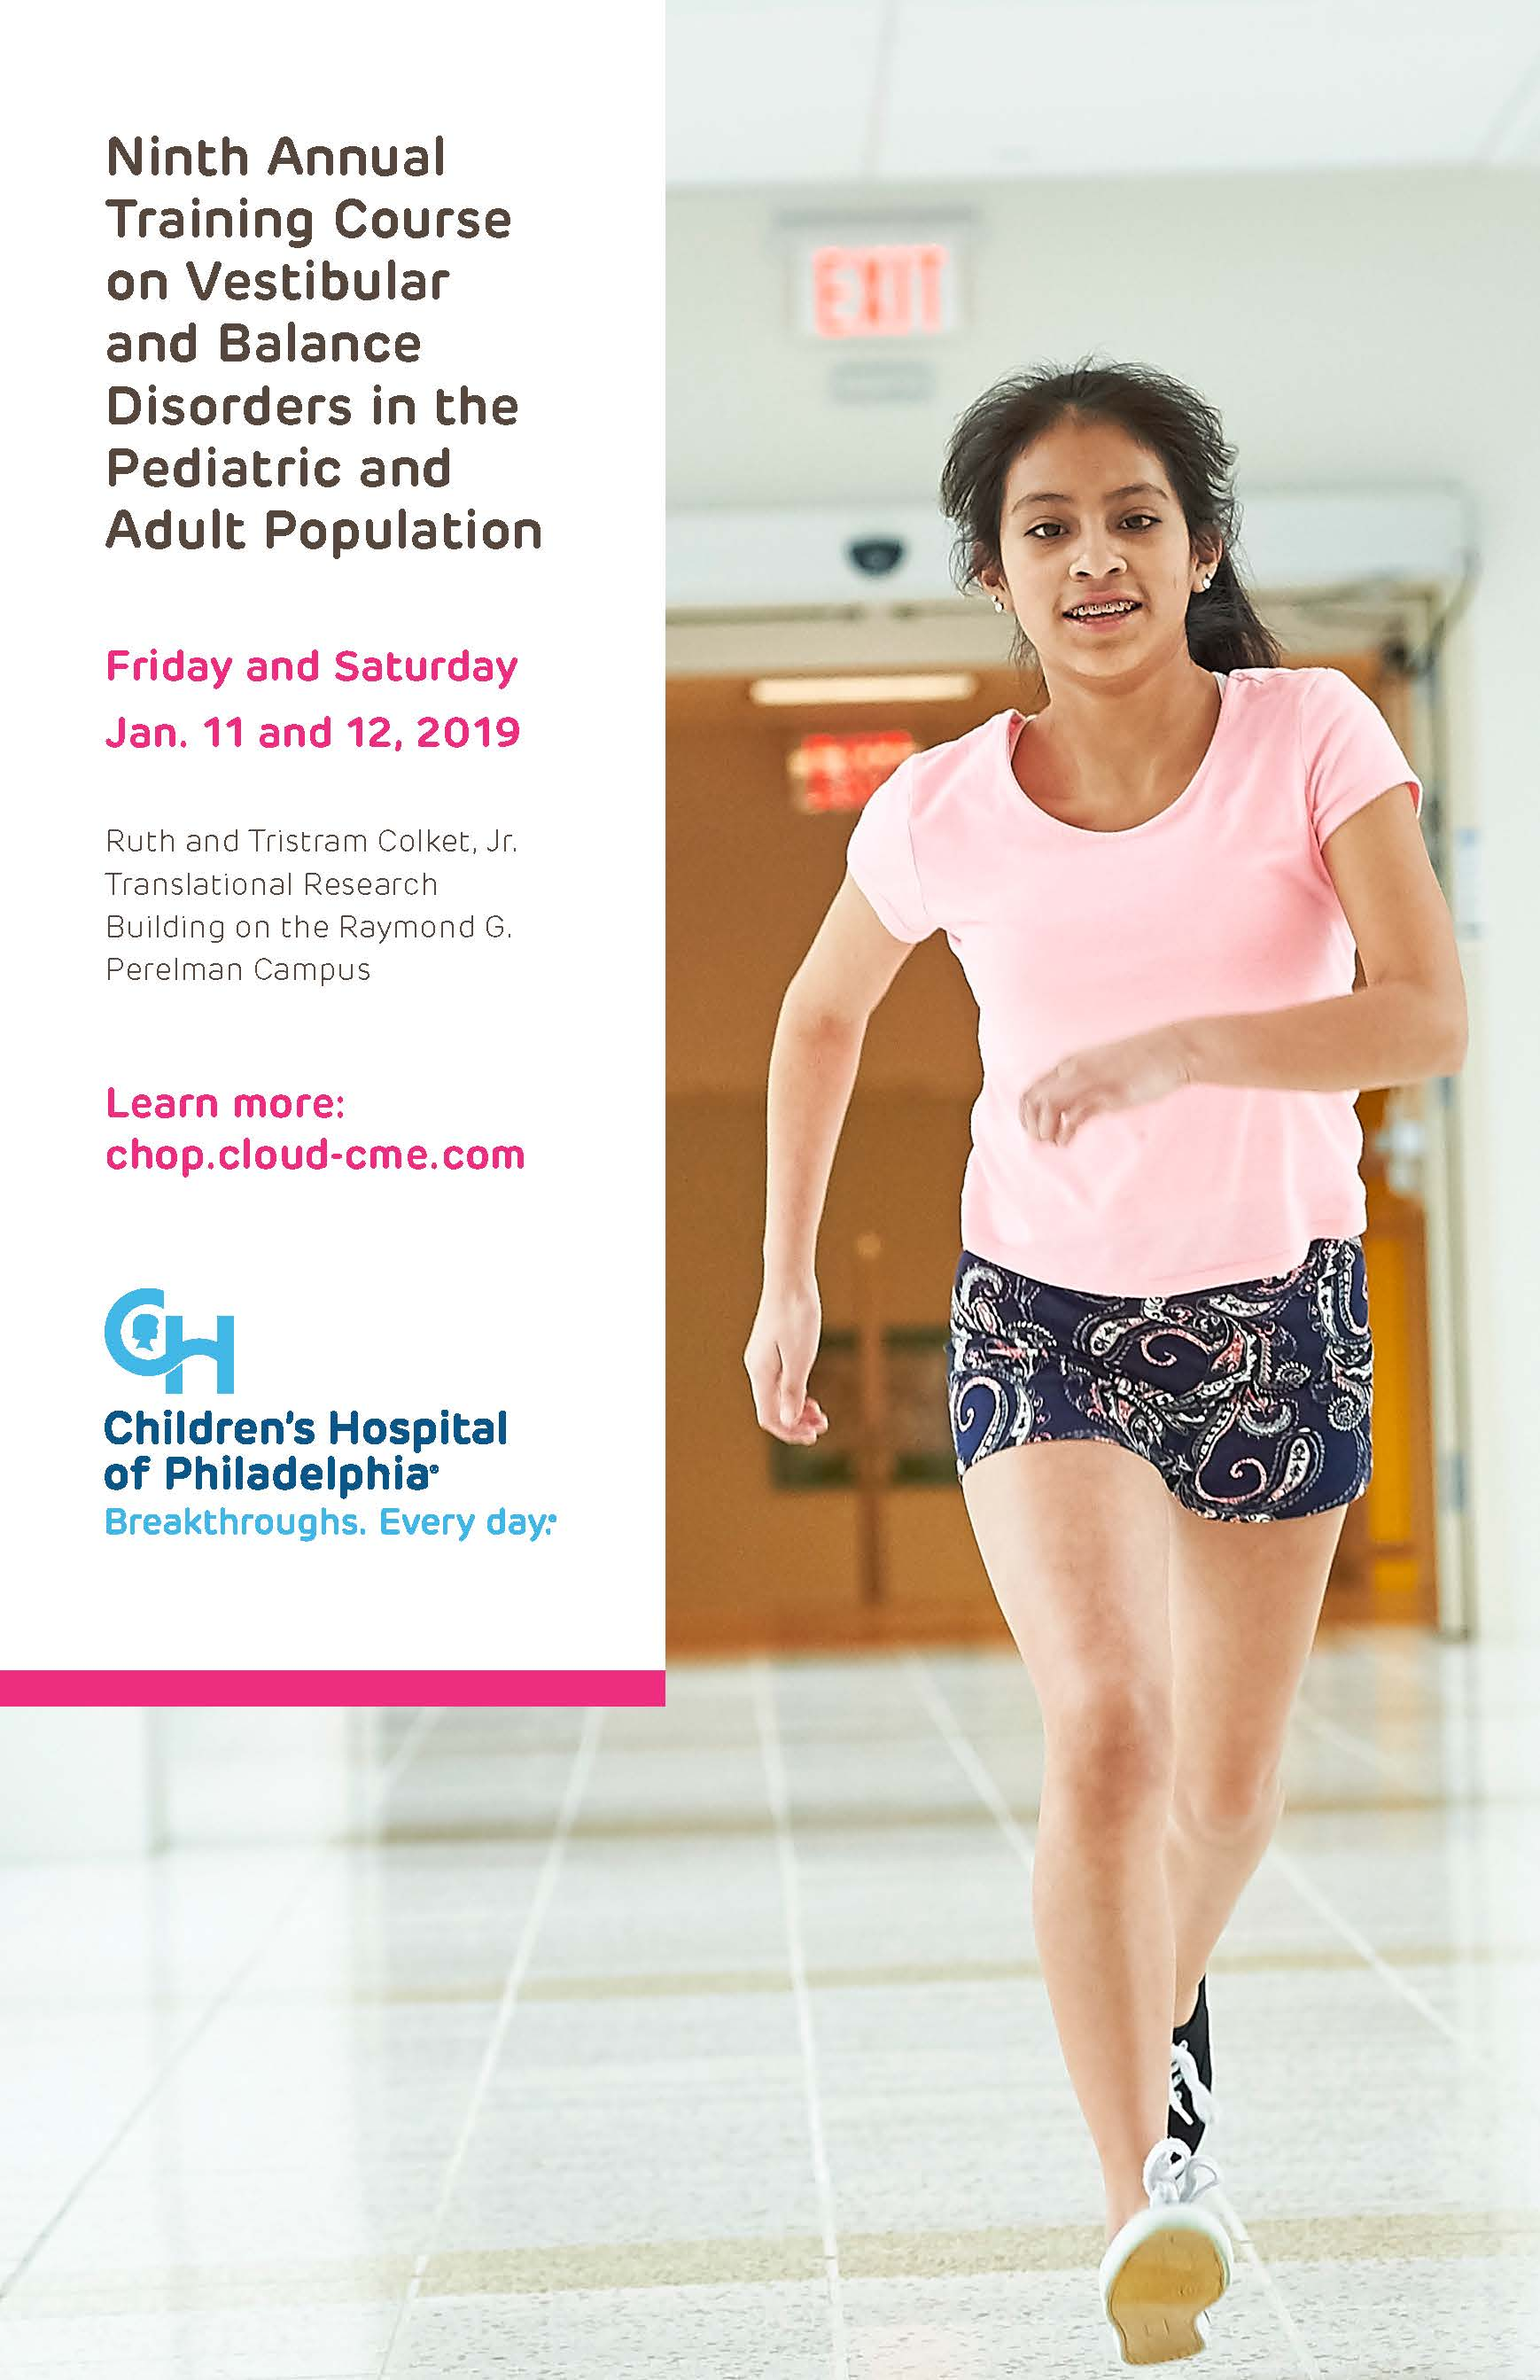 Ninth Annual Training Course on Vestibular and Balance Disorders in the Pediatric and Adult Population Banner